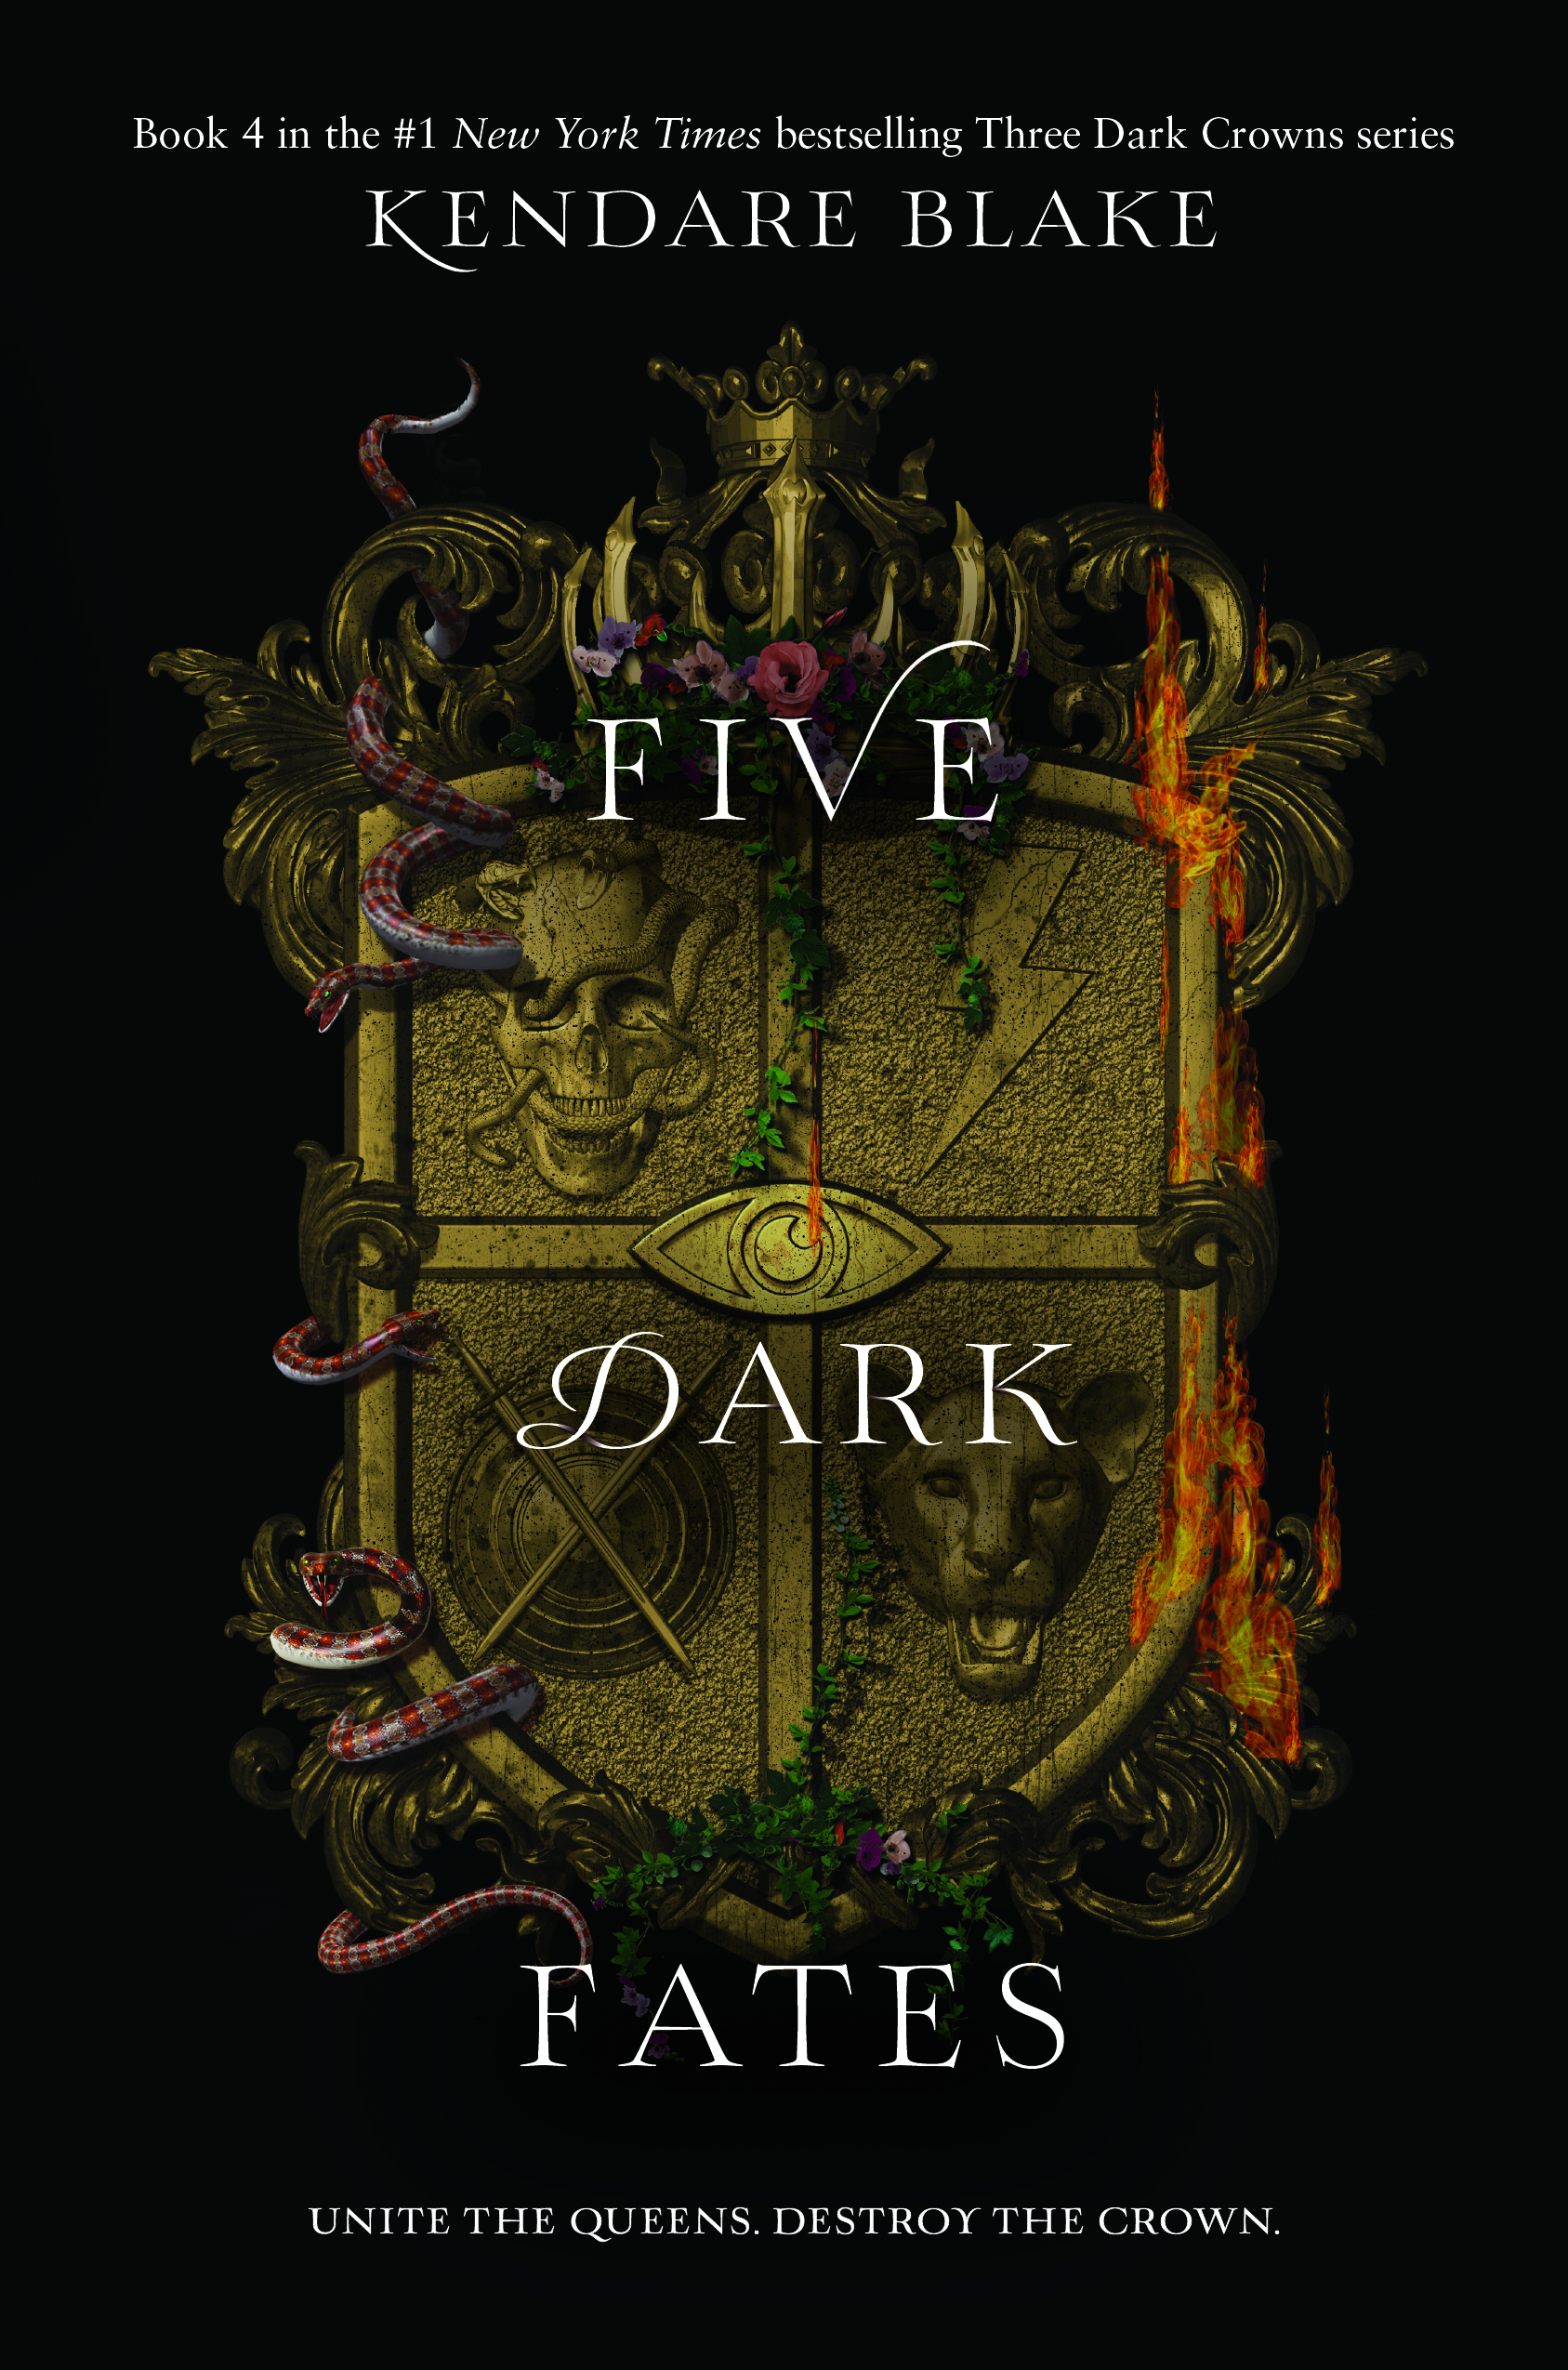 Three Dark Crowns Series Archives - Kendare Blake